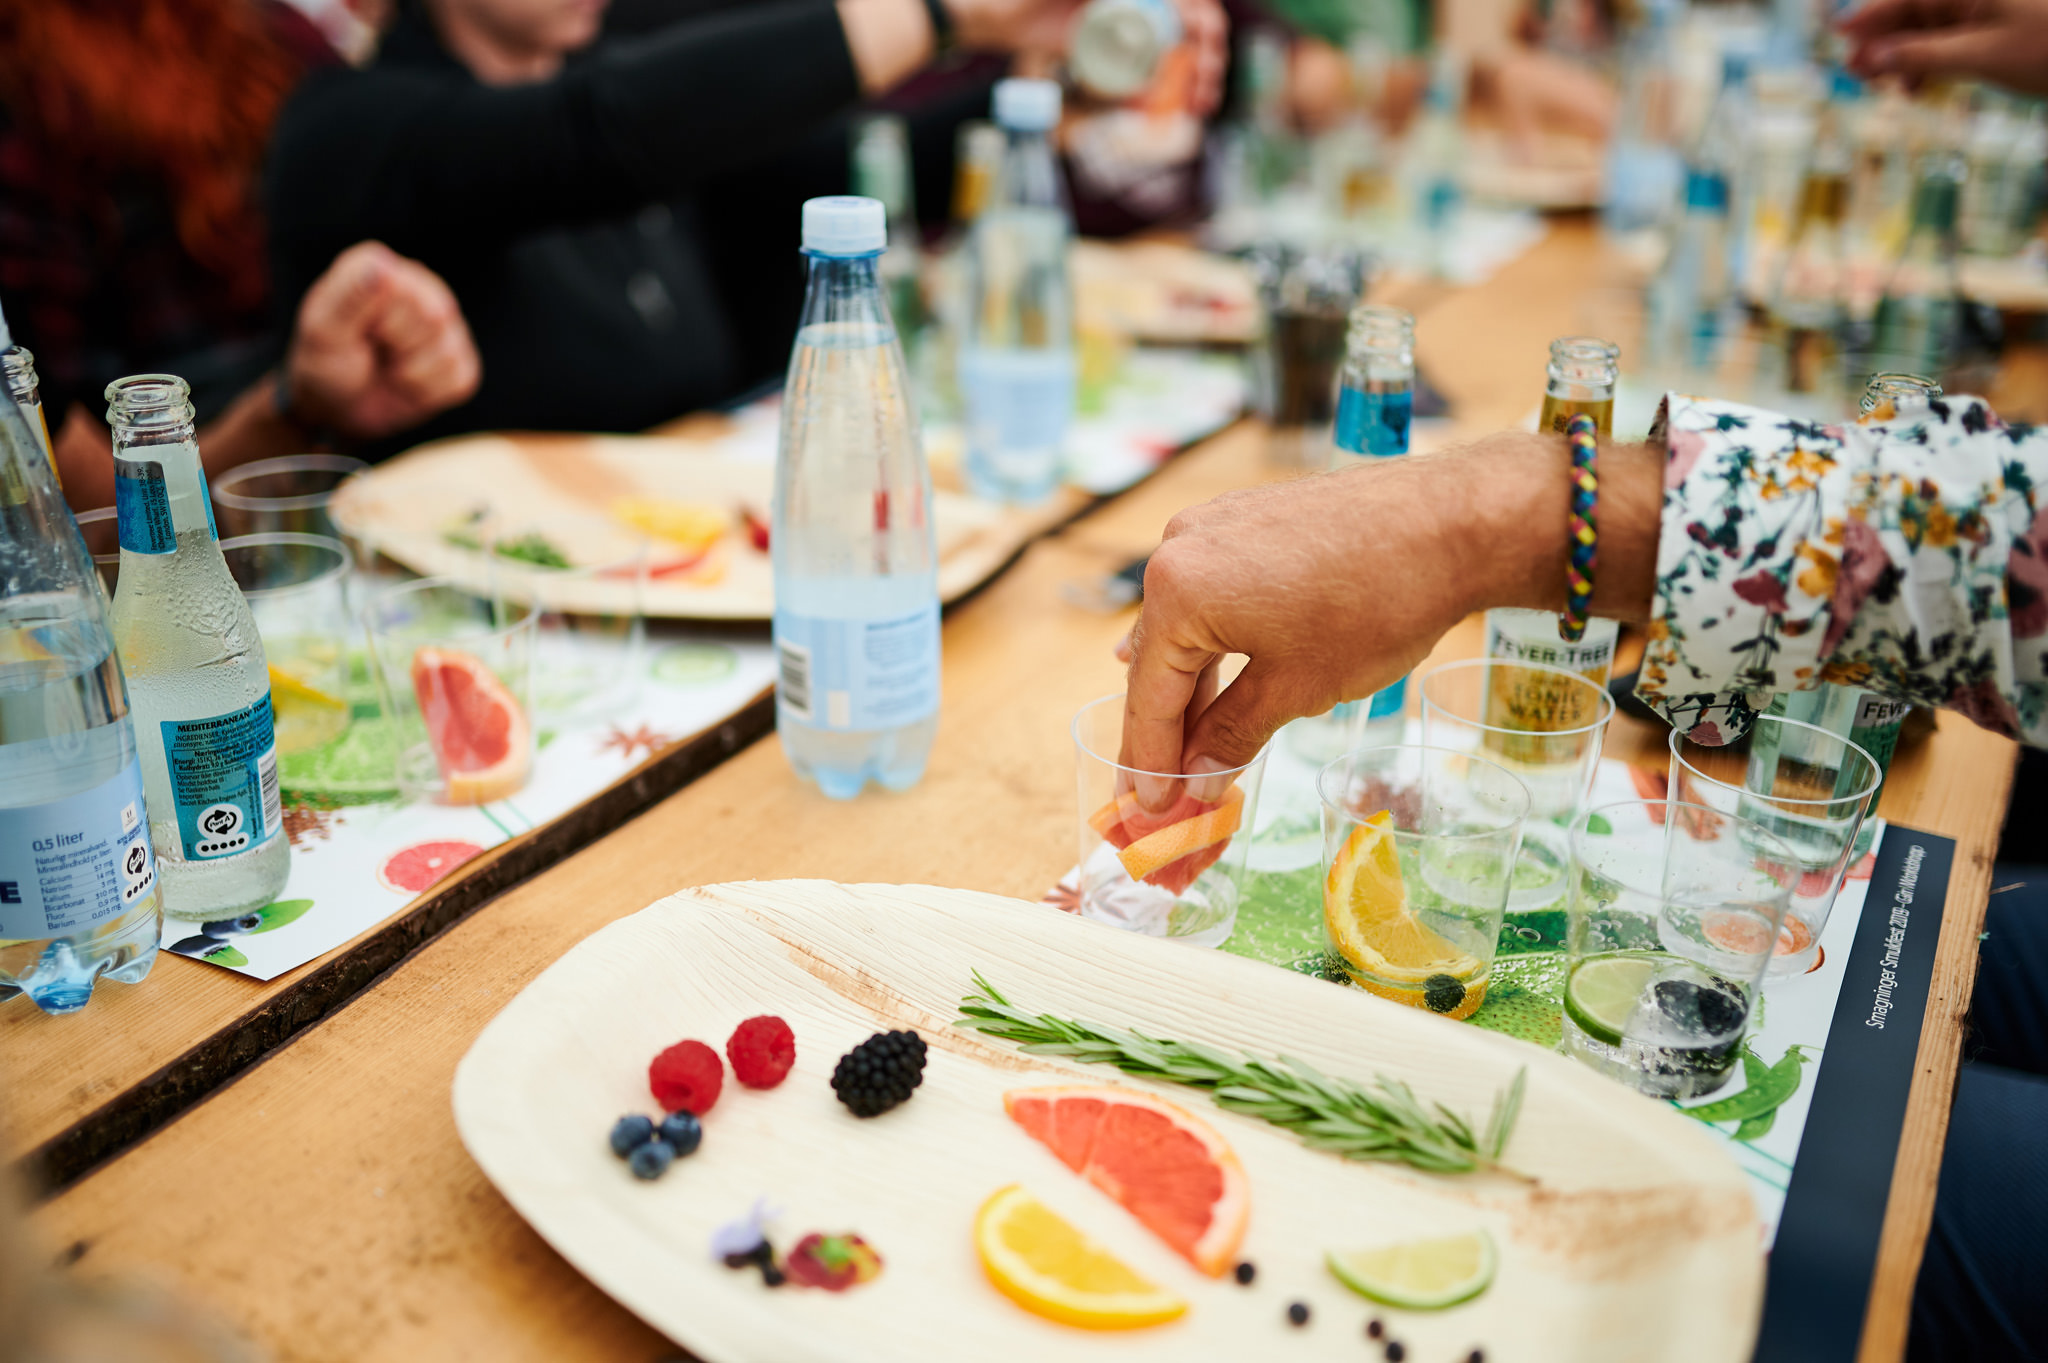 Gin Workshop til Smukfest 2019